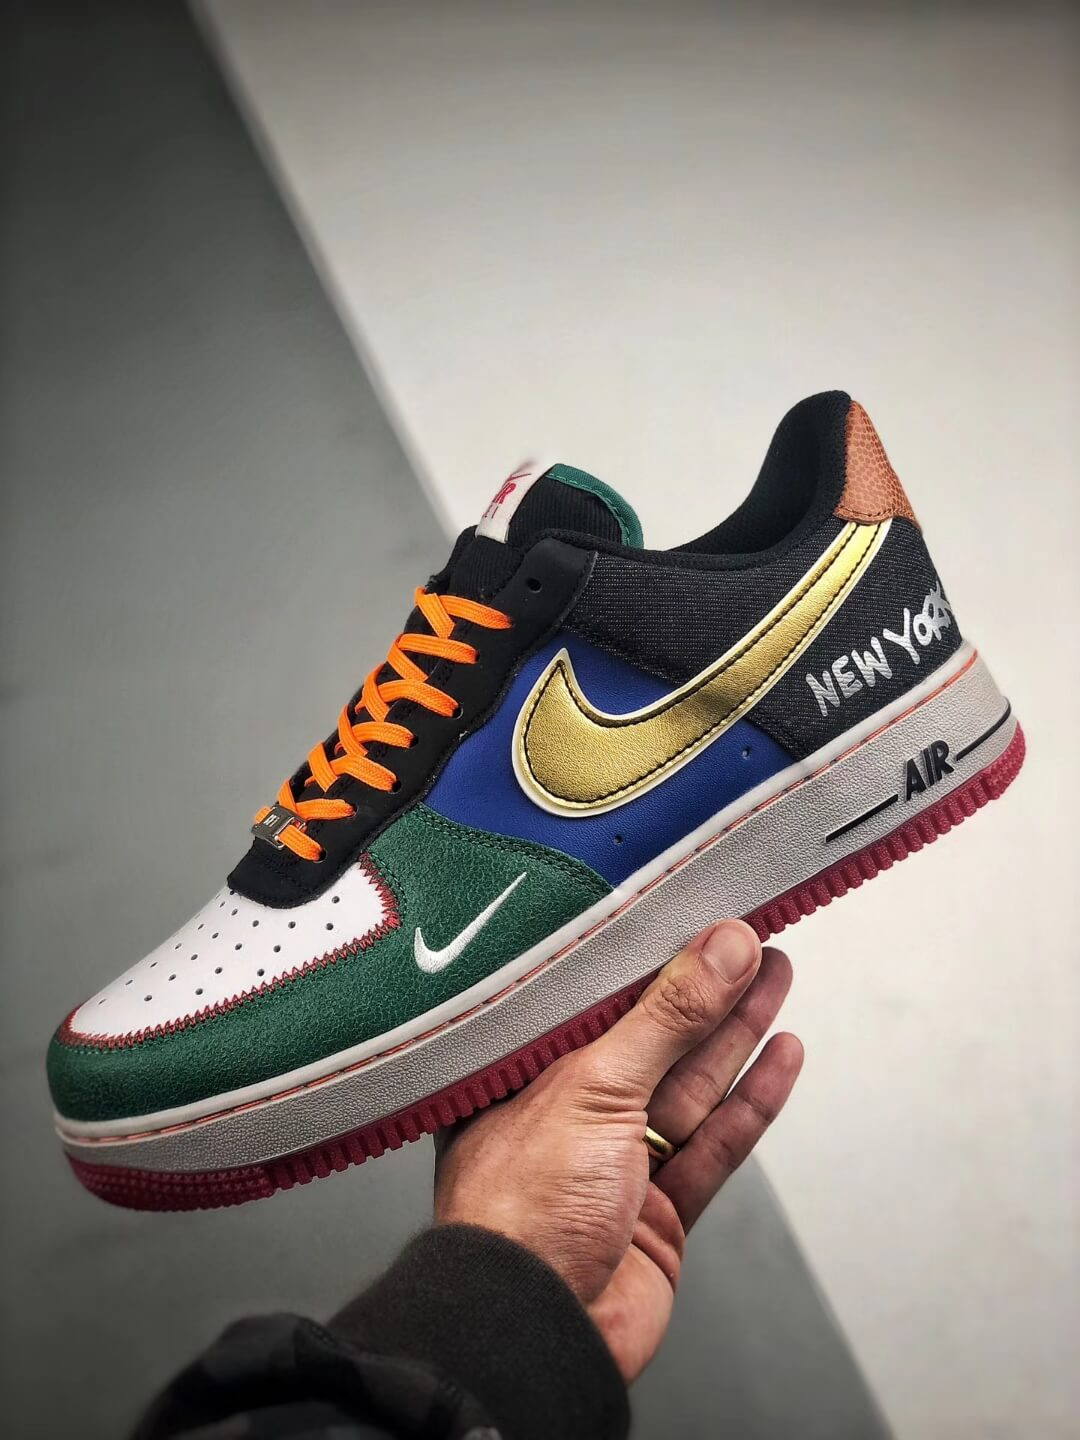 The Nike Air Force 1 Low 07 What The NYC Top Fake Sneaker 04